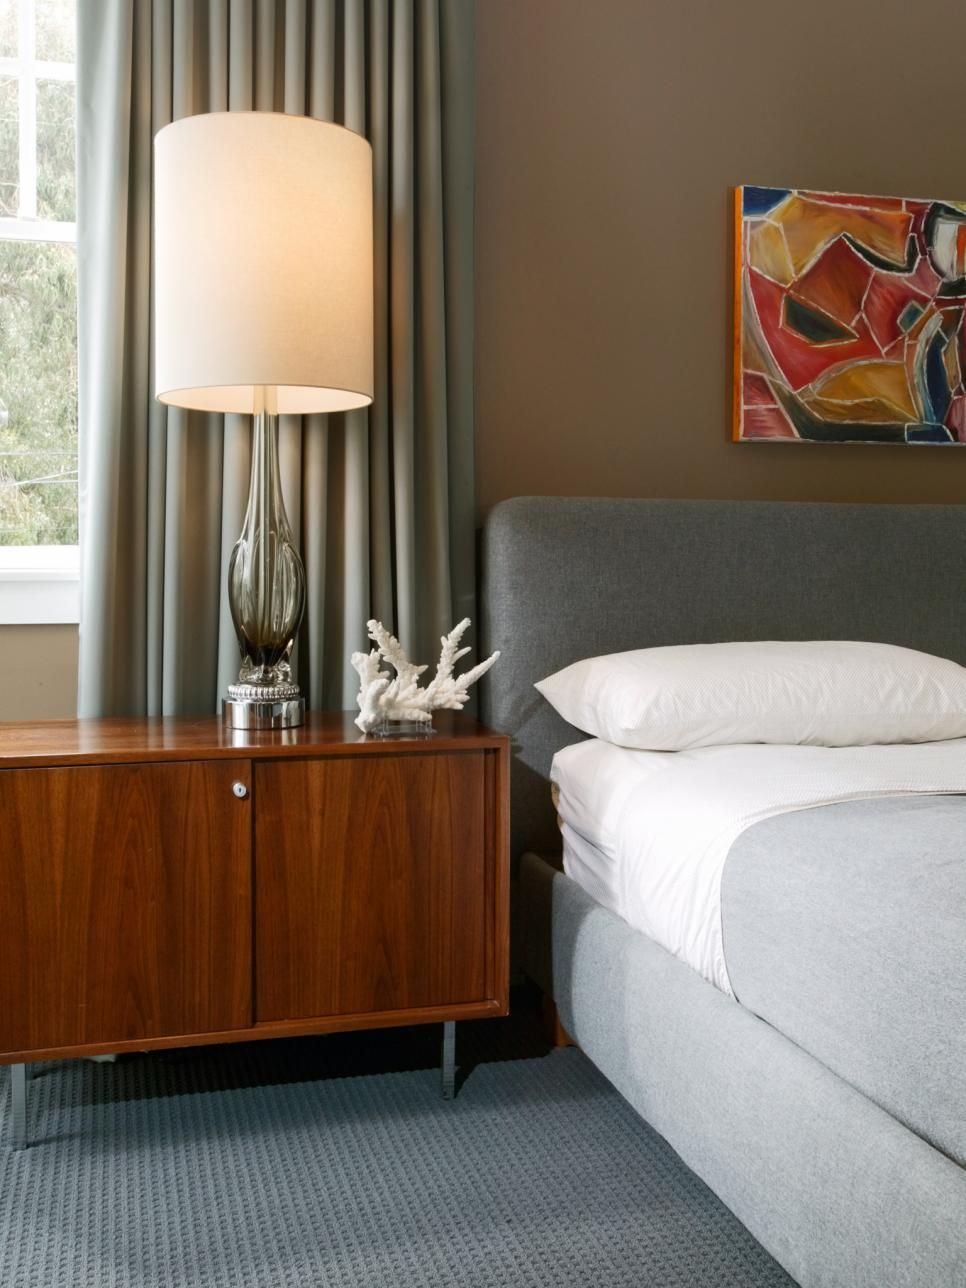 Hgtv Gray Bedrooms: Tips For A Clutter-Free Bedroom Nightstand